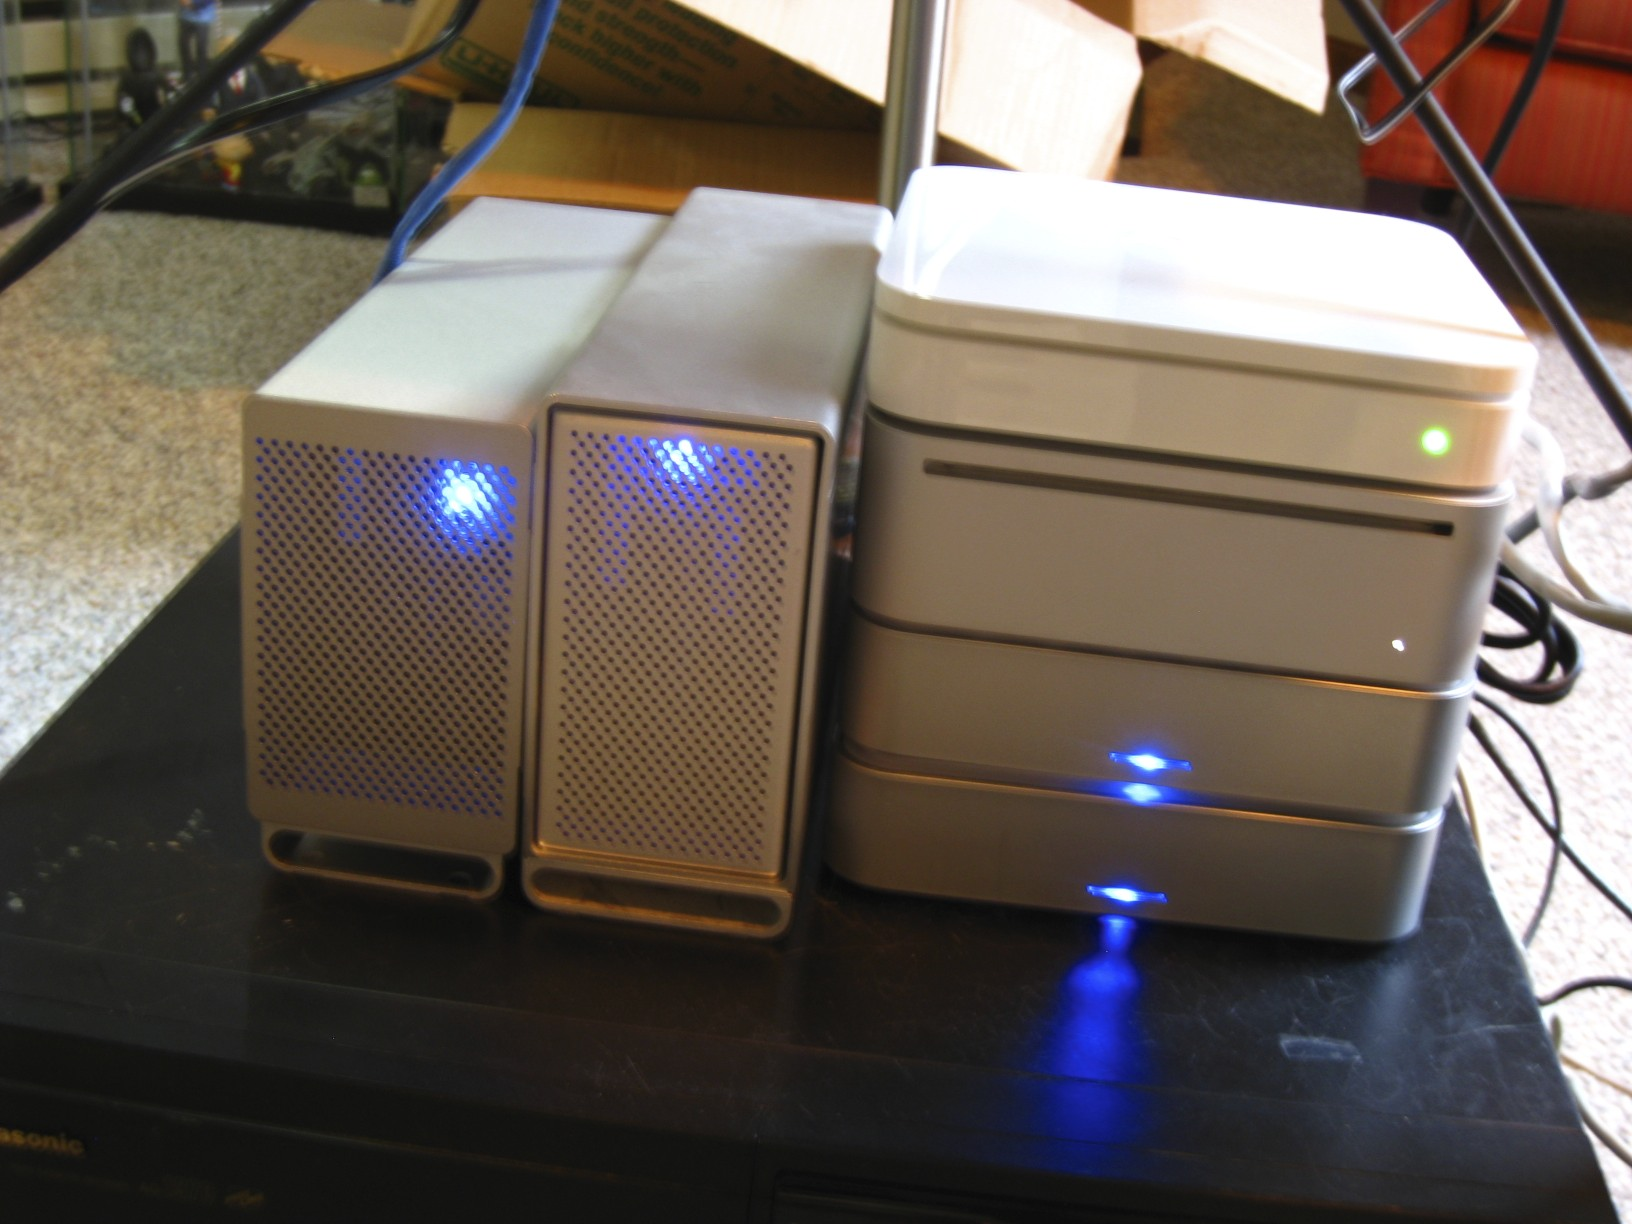 Mac mini, Airport Extreme and four hard drive enclosures configured as mirrored RAIDs